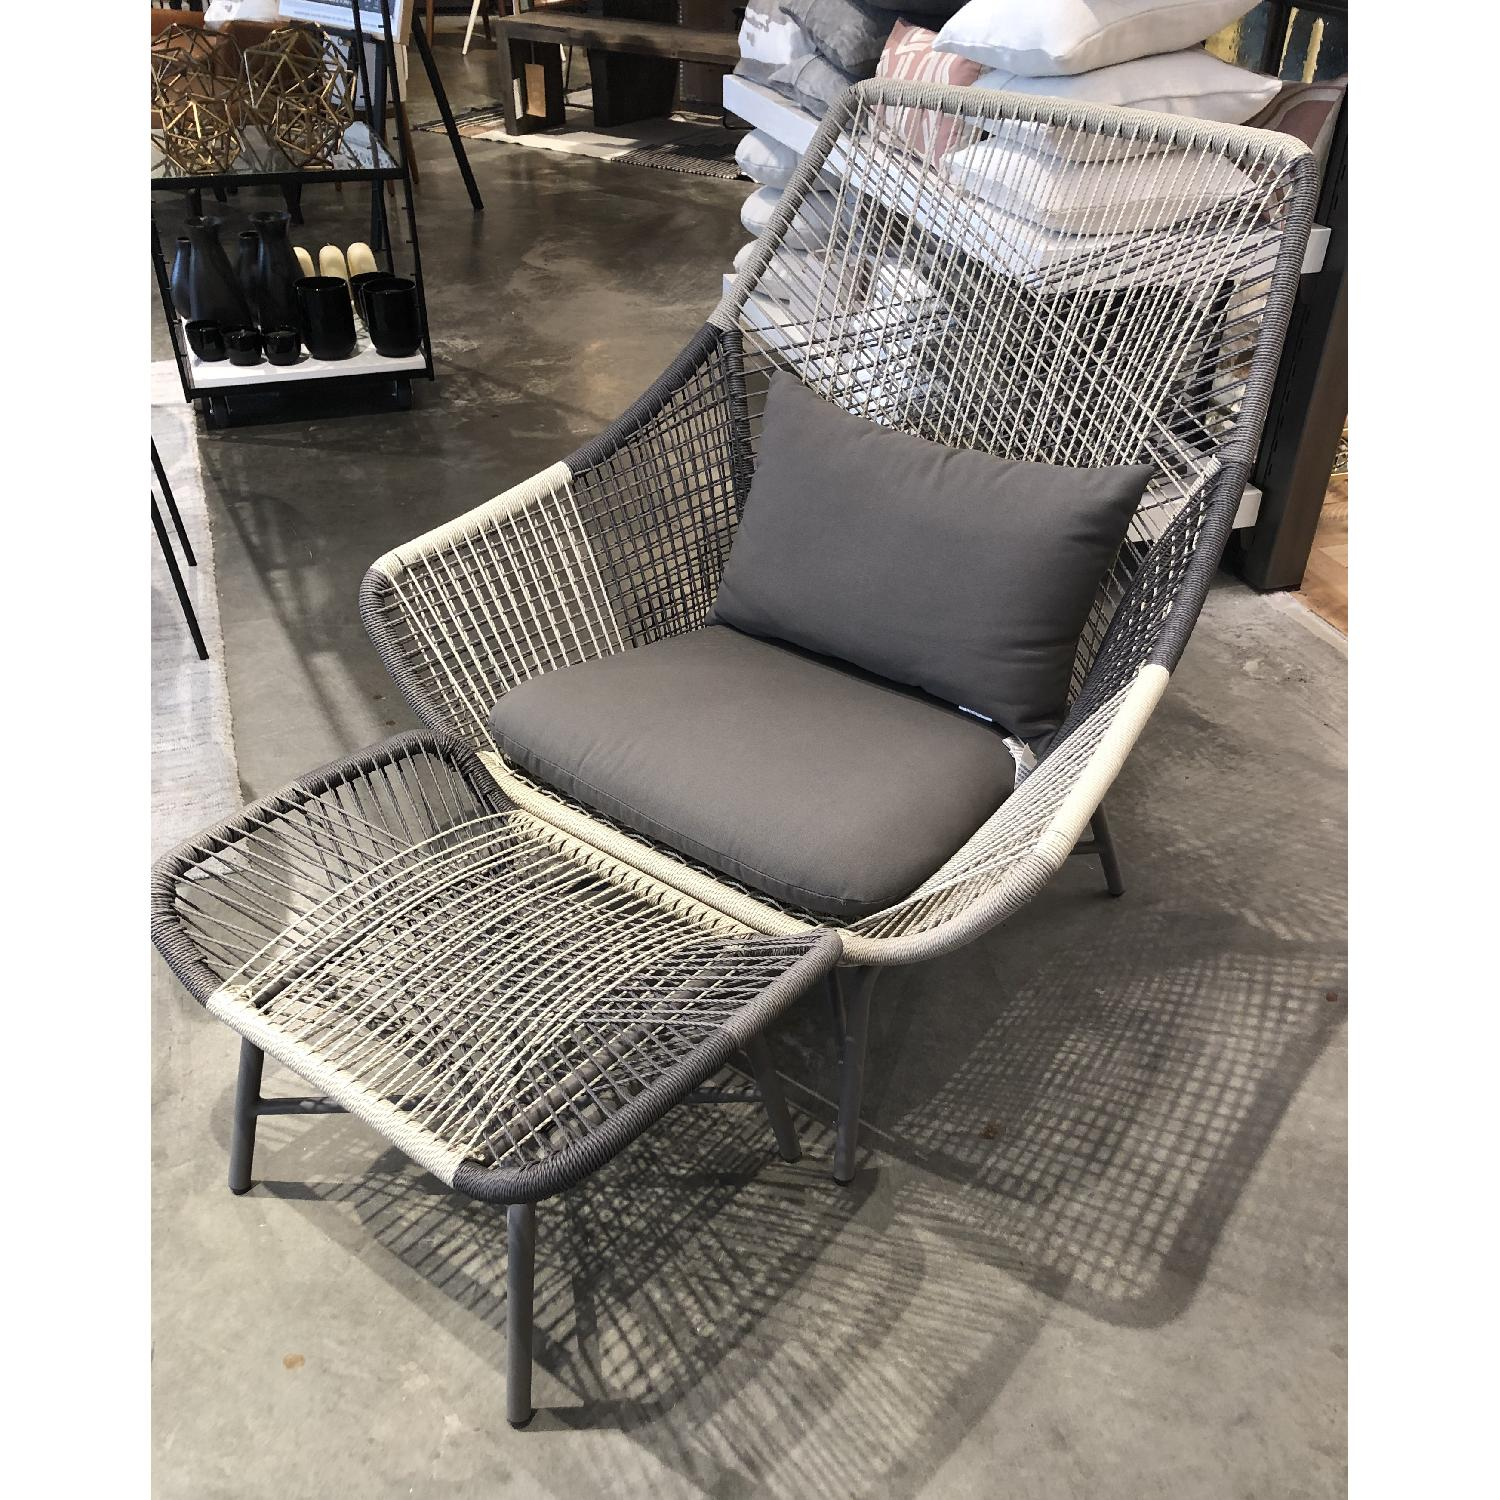 West Elm Huron Outdoor Lounge Chair & Ottoman - image-5